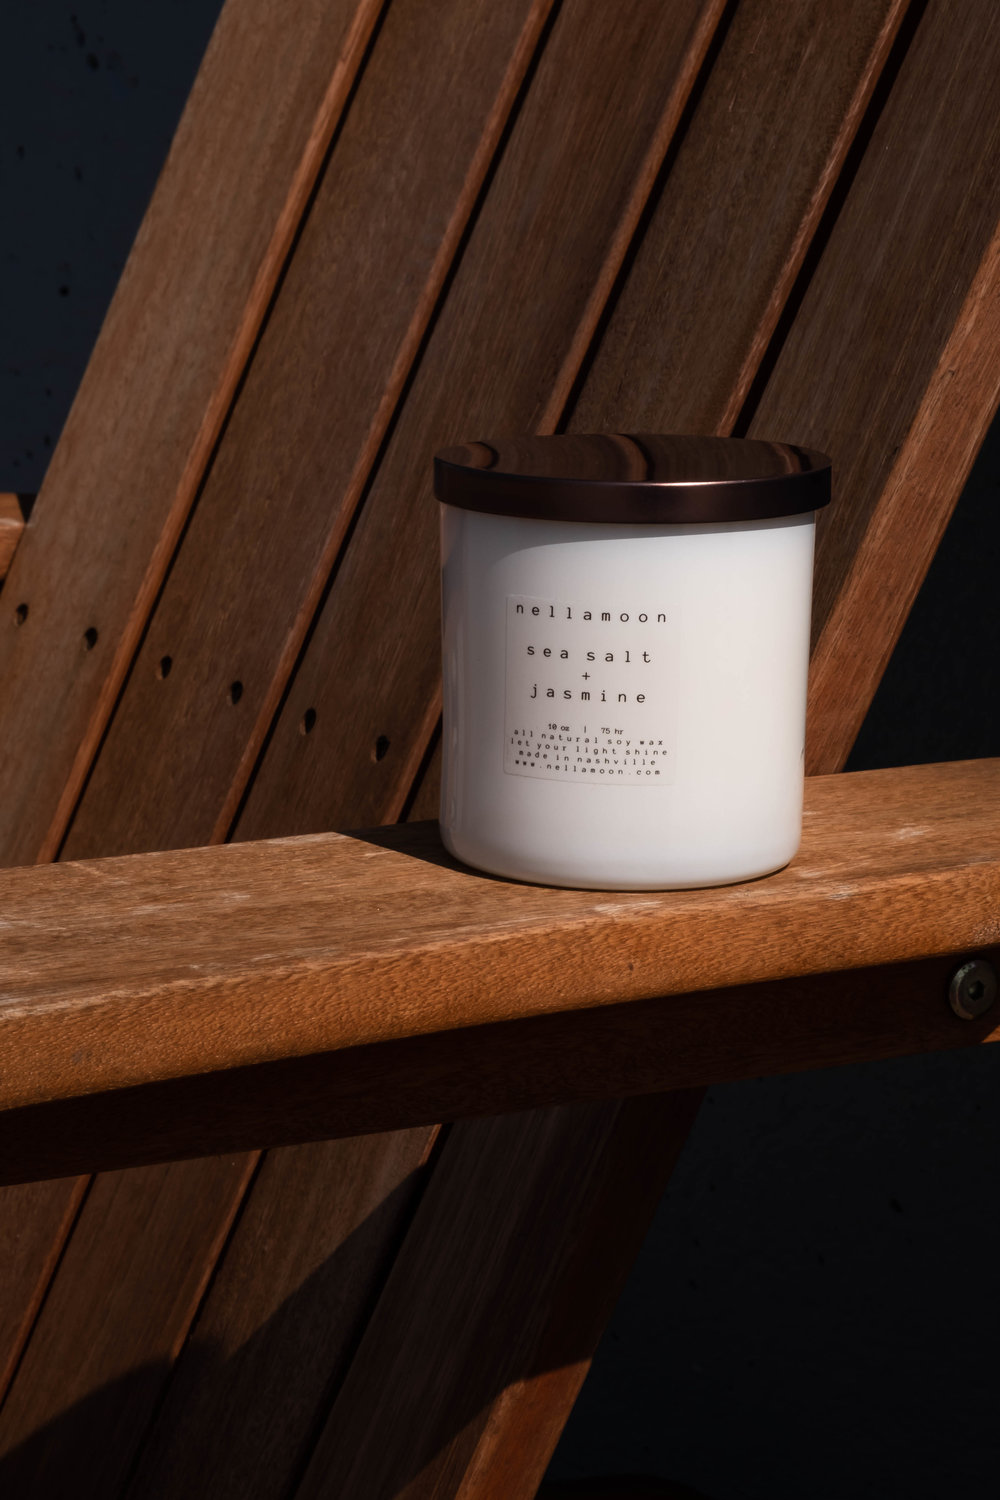 ROSE& IVY Journal Keep Summer Alive with a Candle Nellamoon